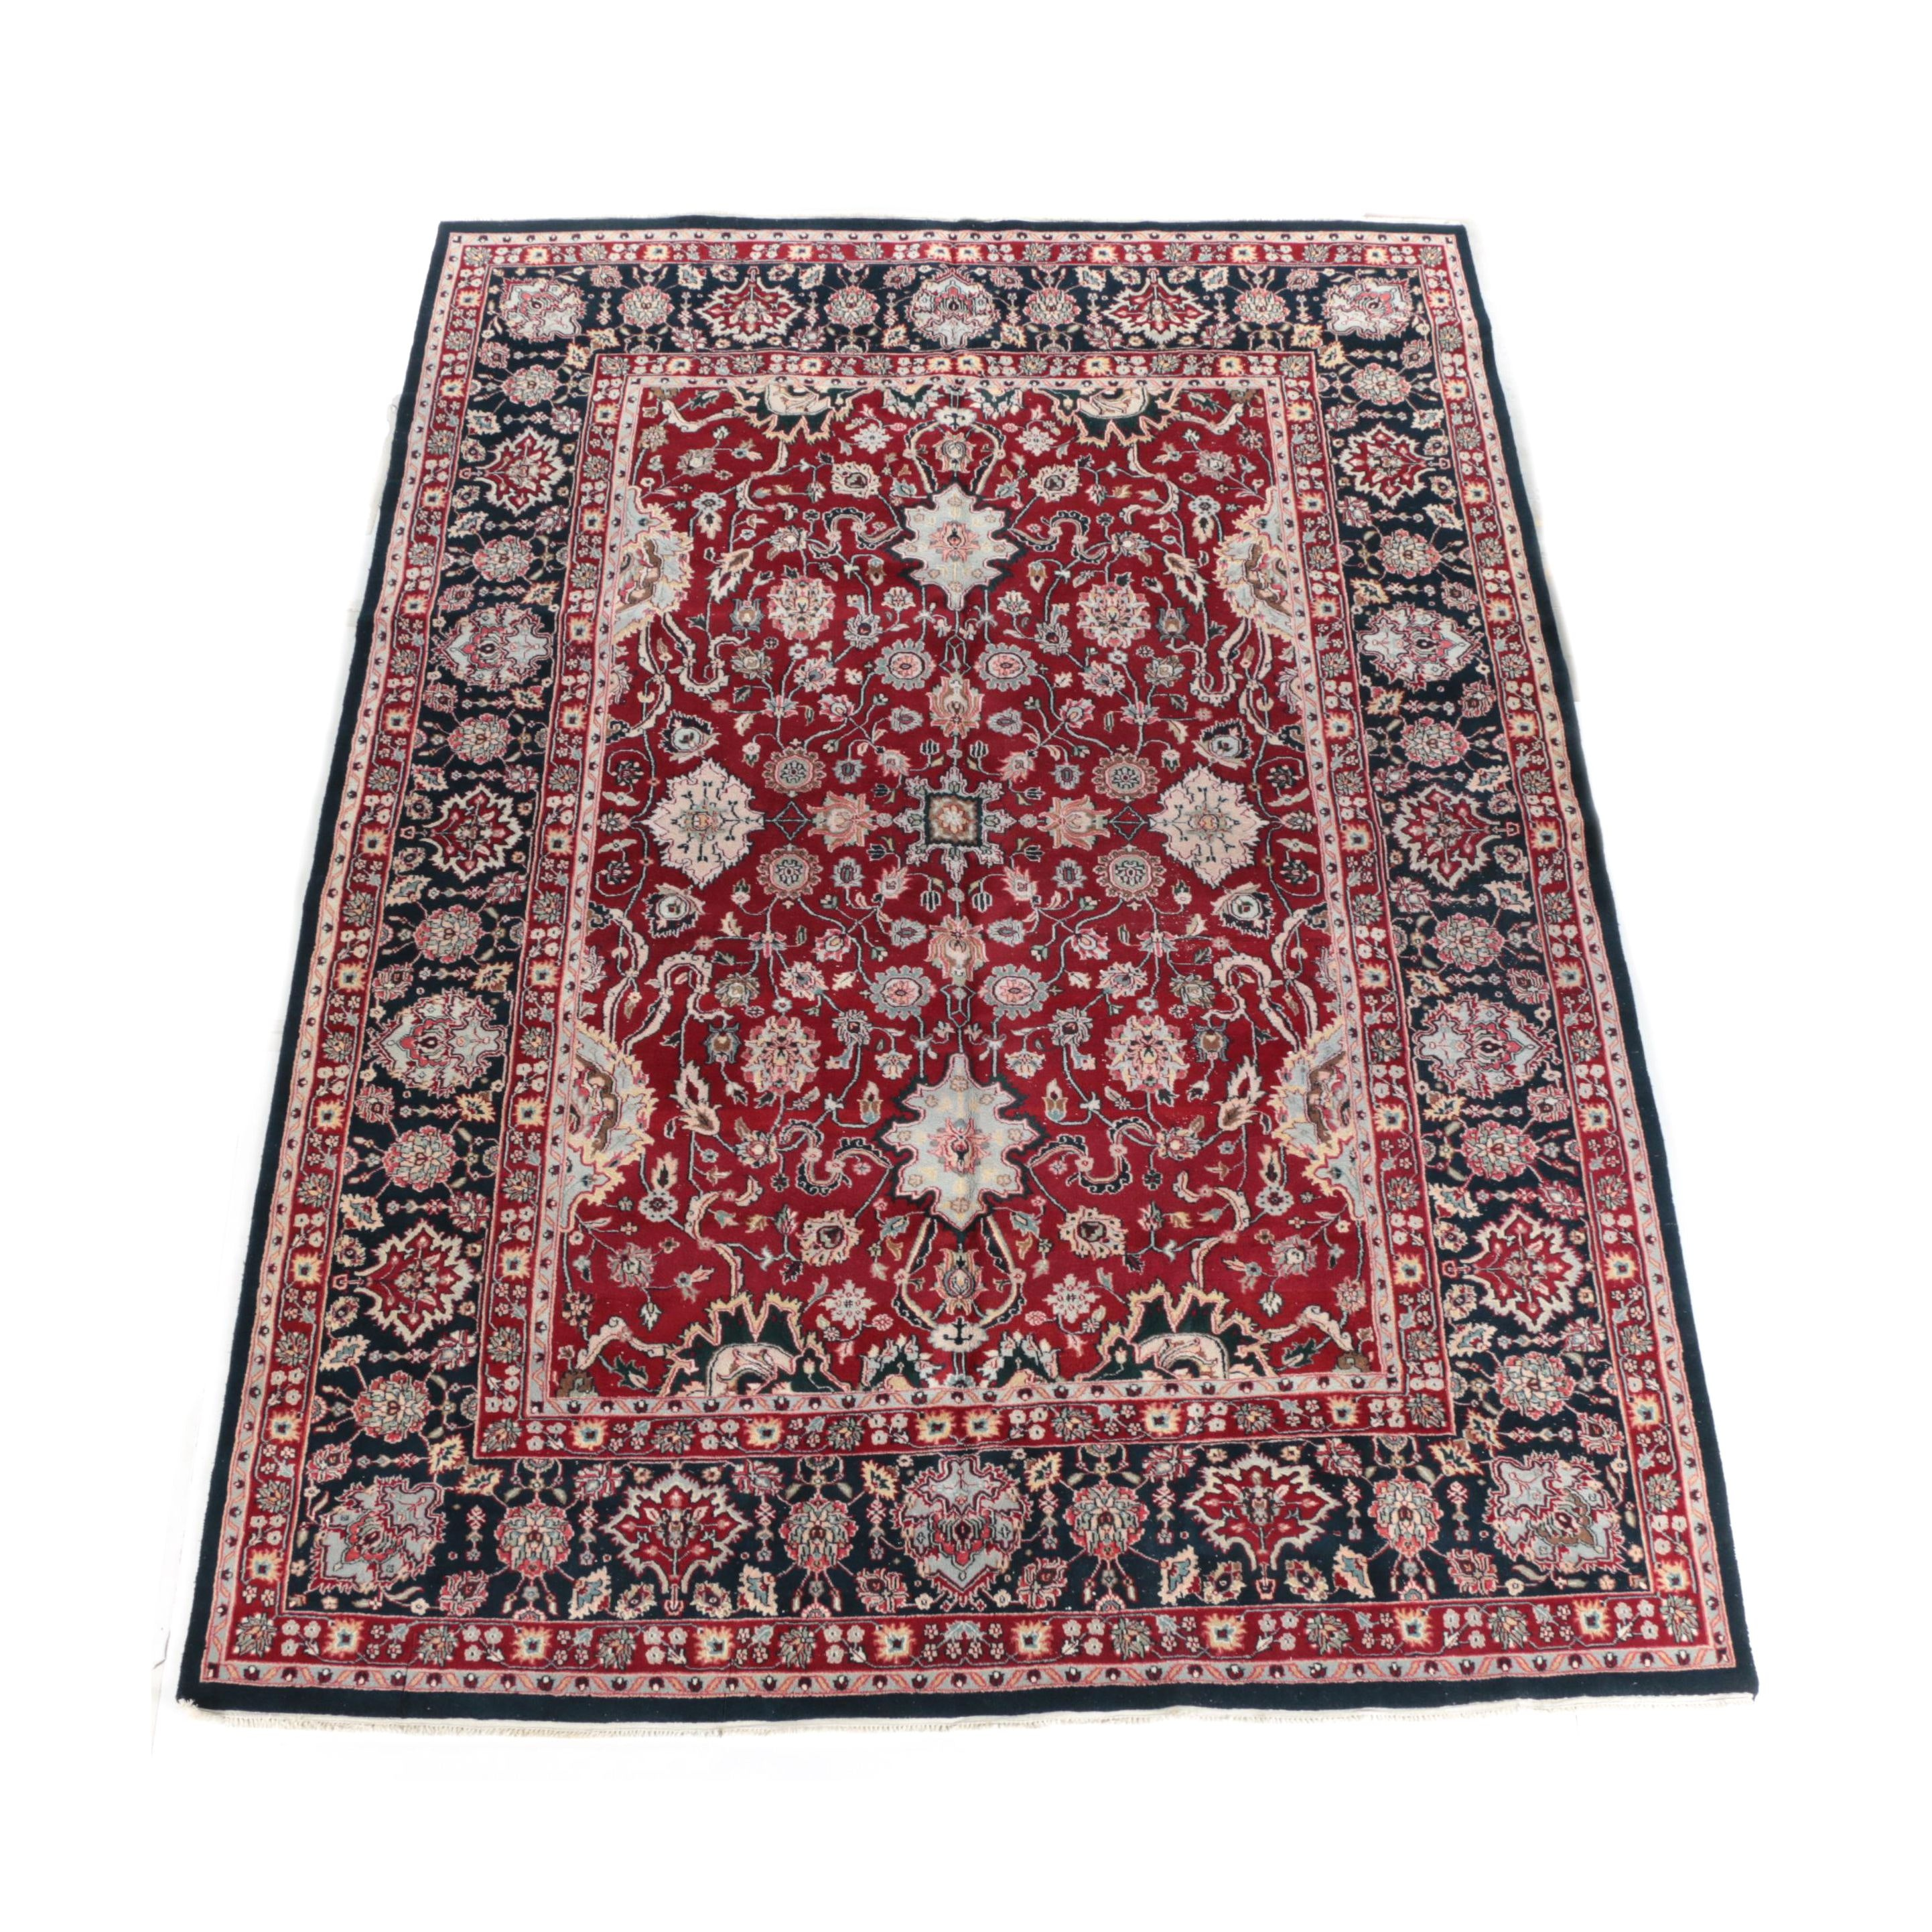 """Hand-Knotted Indian """"Mashad"""" Wool Room Size Rug"""